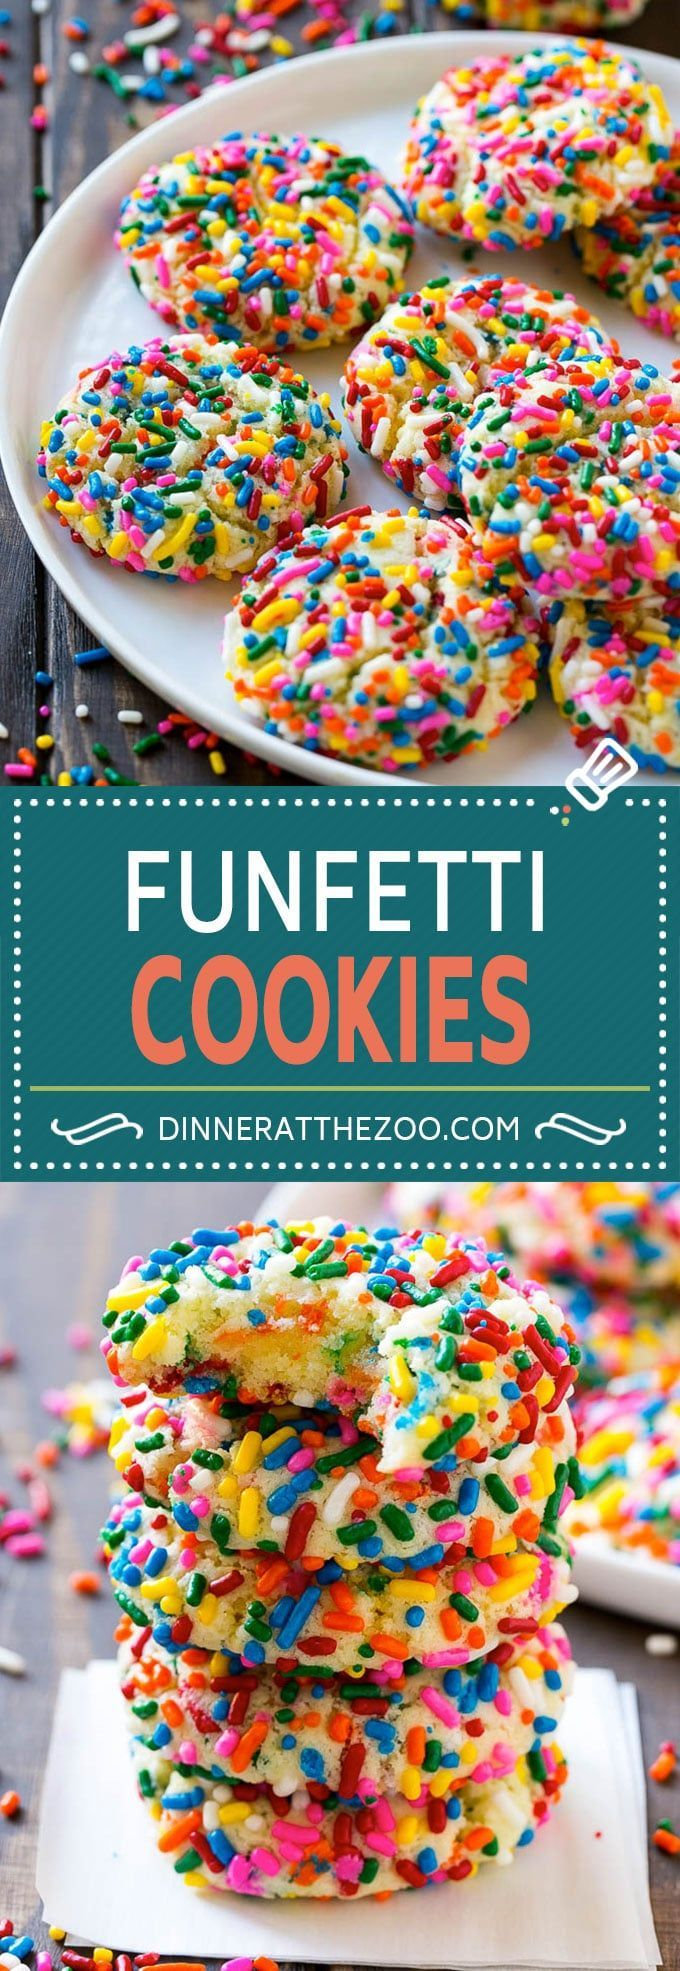 Funfetti Cookies Recipe | Funfetti Cake Mix Cookies | Sprinkle Cookies | Cake Mix Cookies. Birthday party for kids